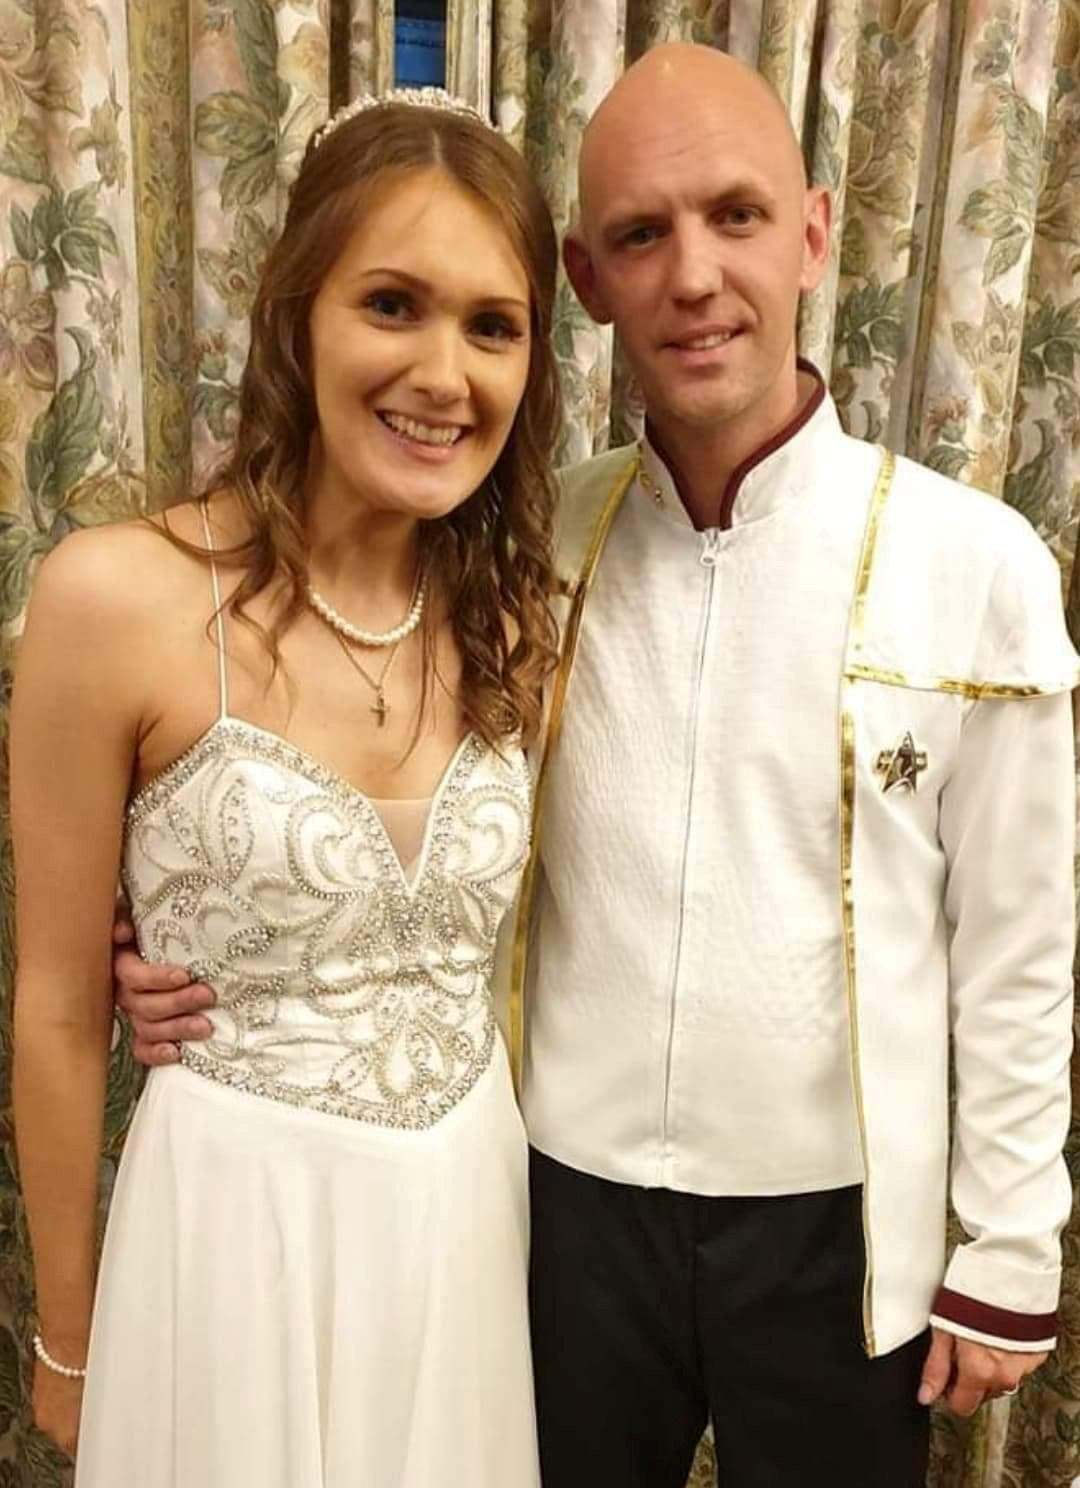 Viktorija, originally from Latvia, and Chris, pictured on their wedding day, discussed the idea of marriage on their first date. [Photo: SWNS]